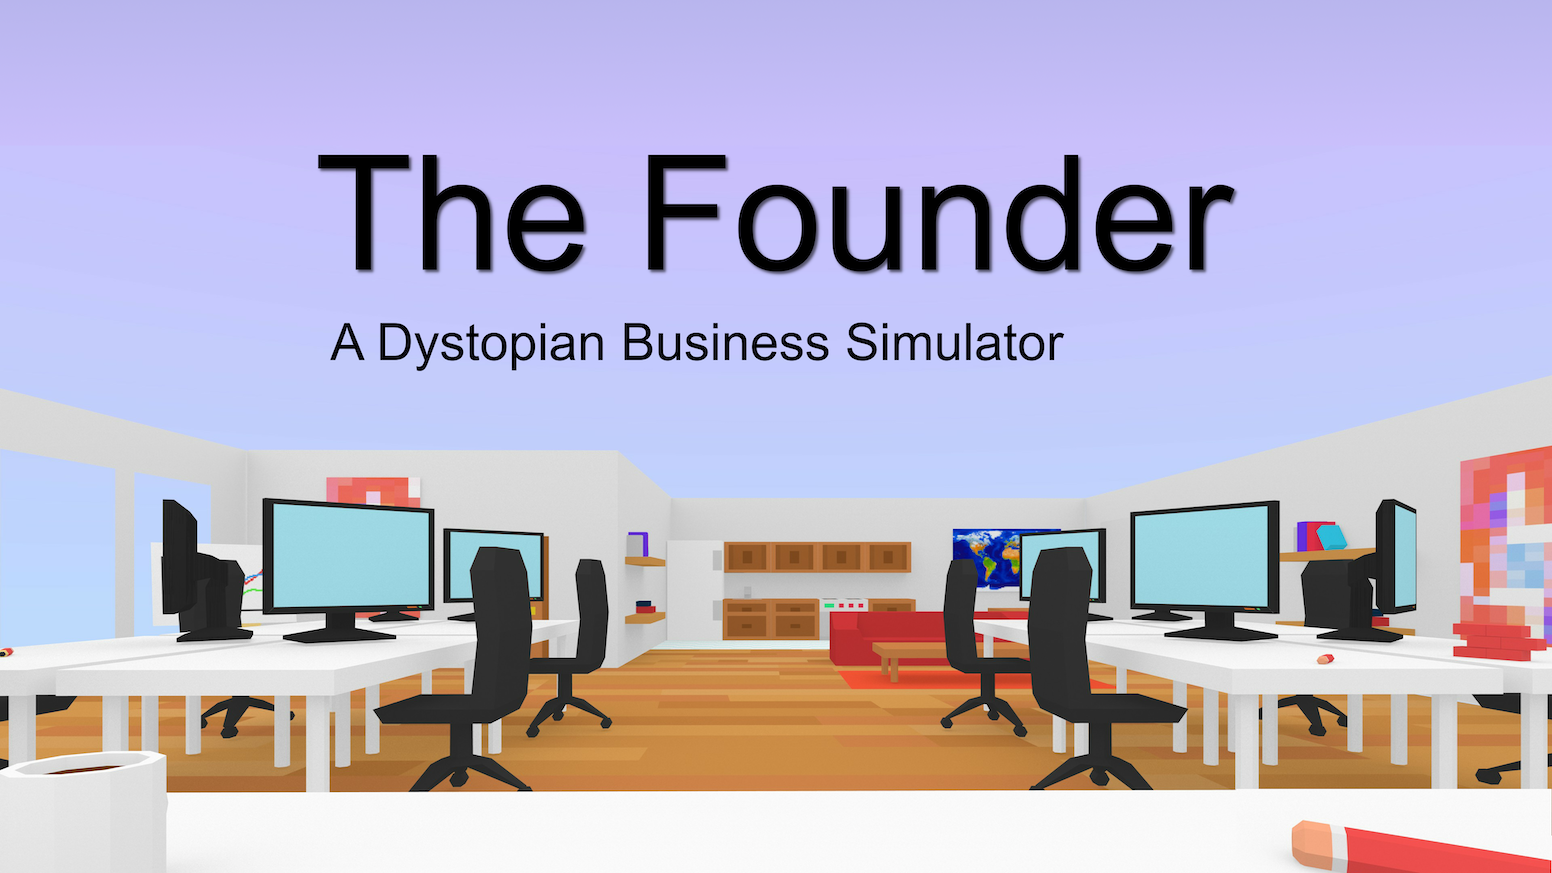 The Founder: A Dystopian Business Simulator by Francis Tseng